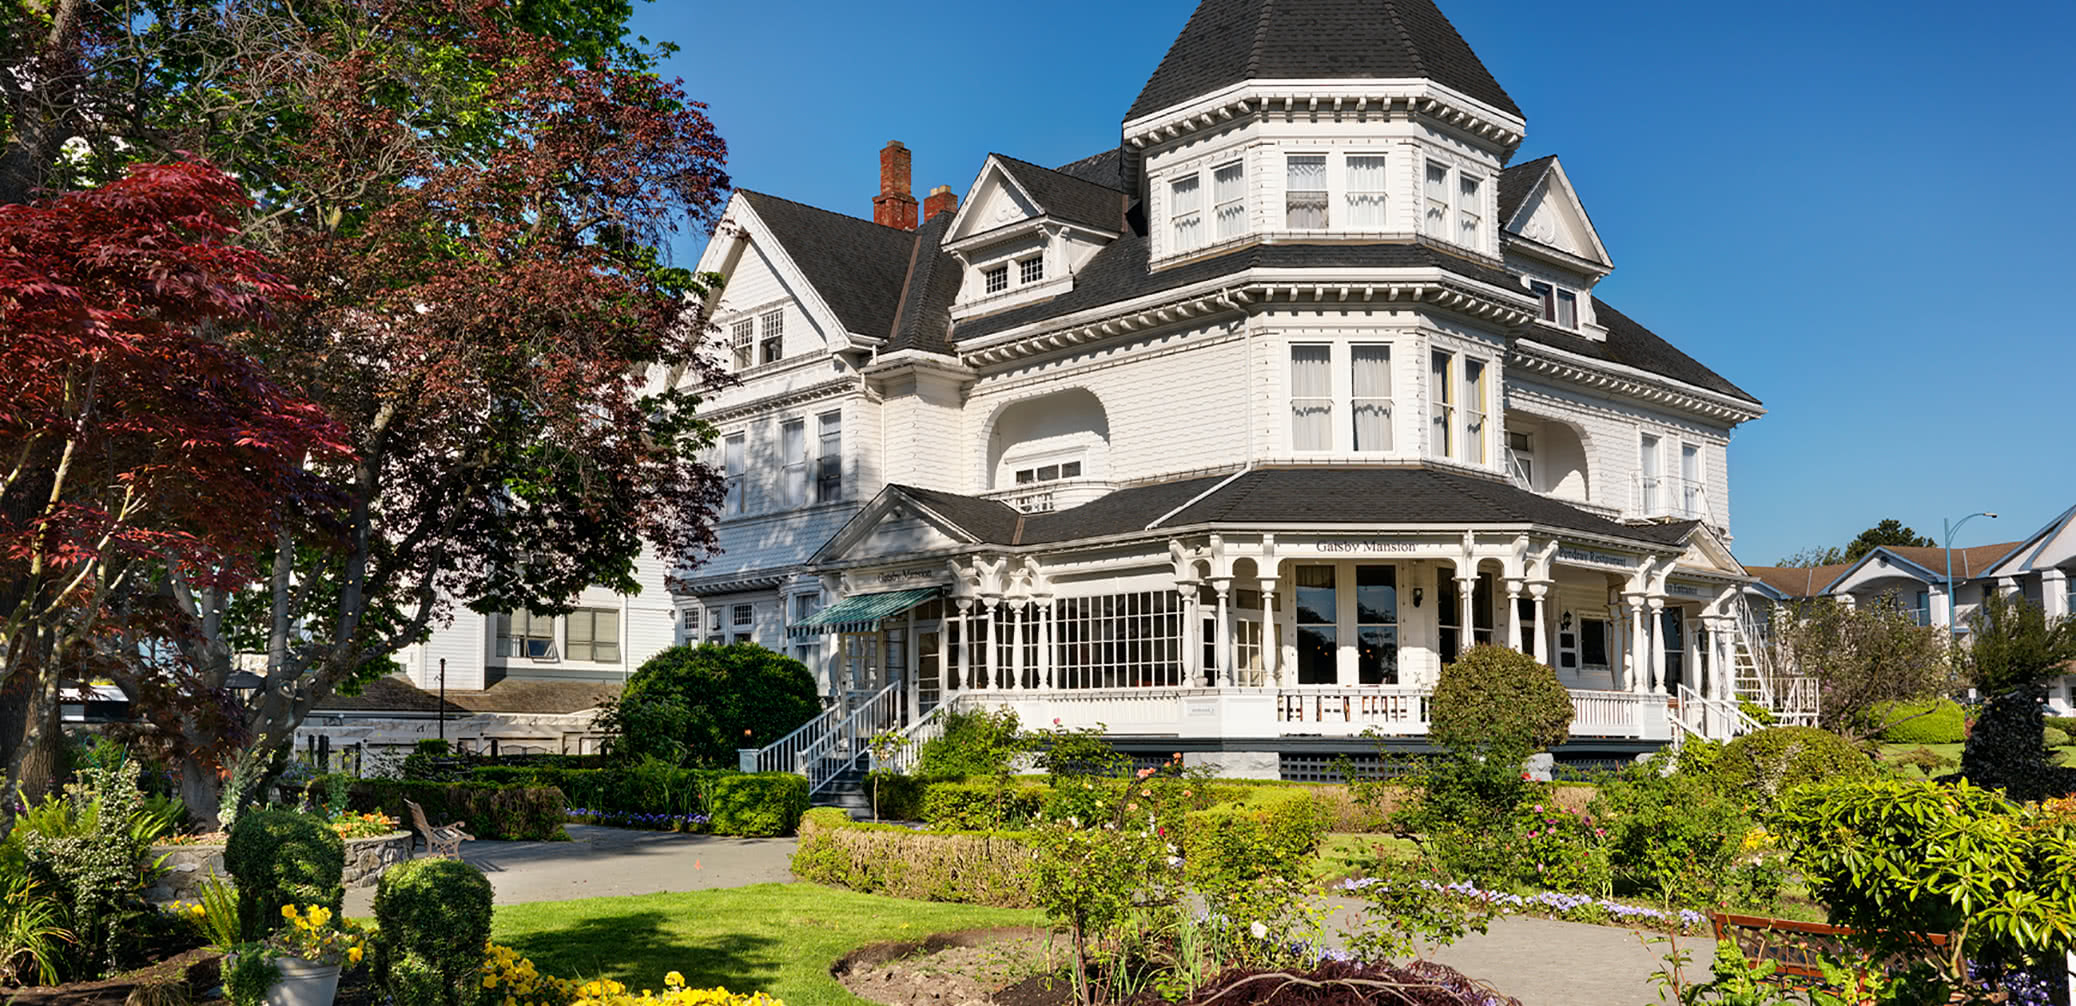 Top 10 Best Boutique Hotels In Victoria Bc Accommodation Tips Luxury Travel Diary